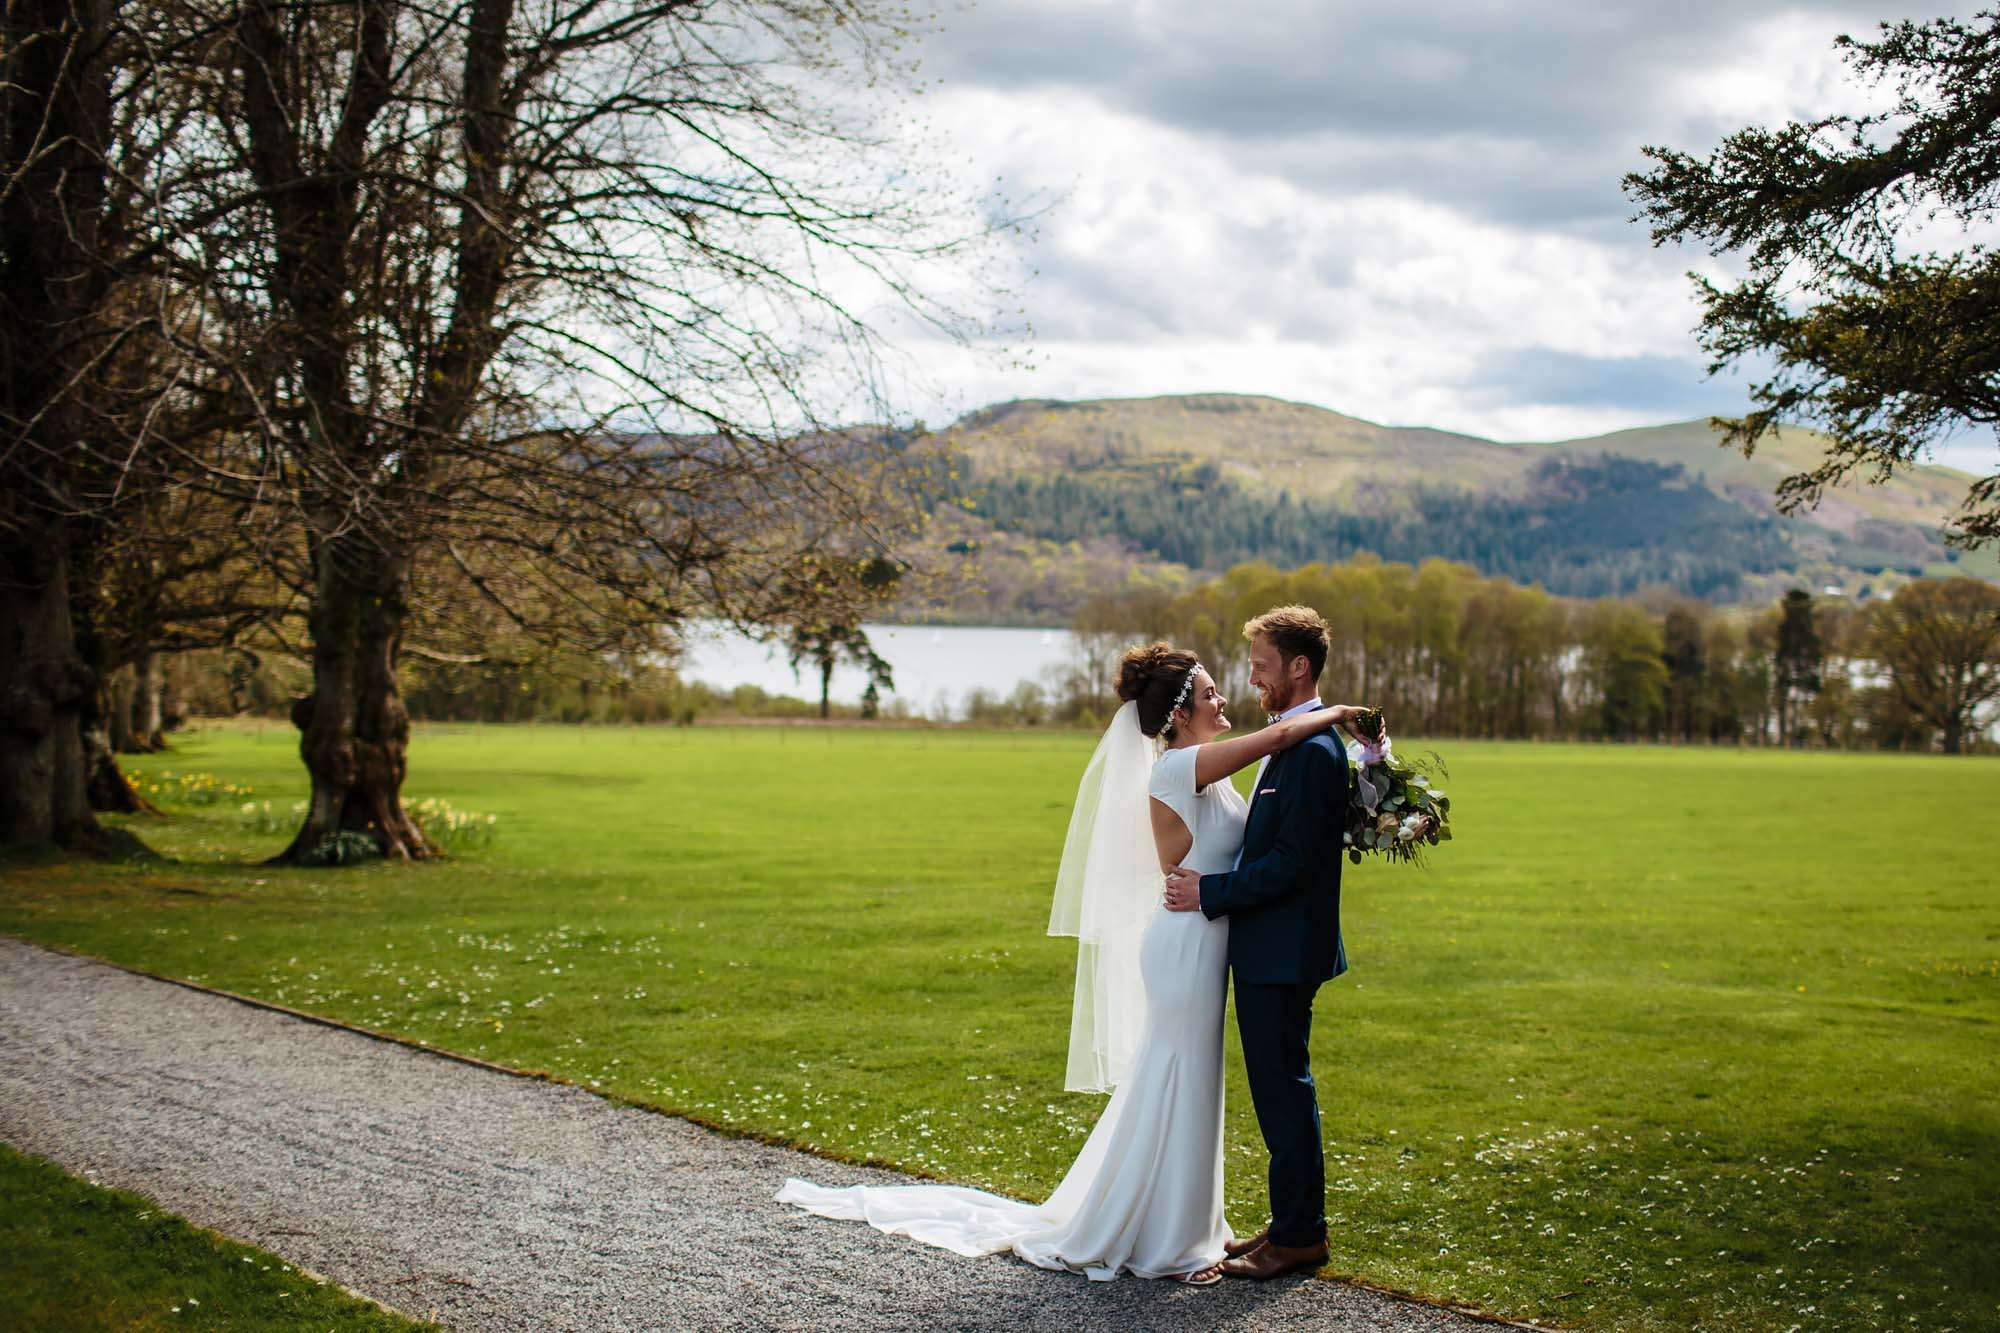 Bride and groom portrait at Lake Bassenthwaite